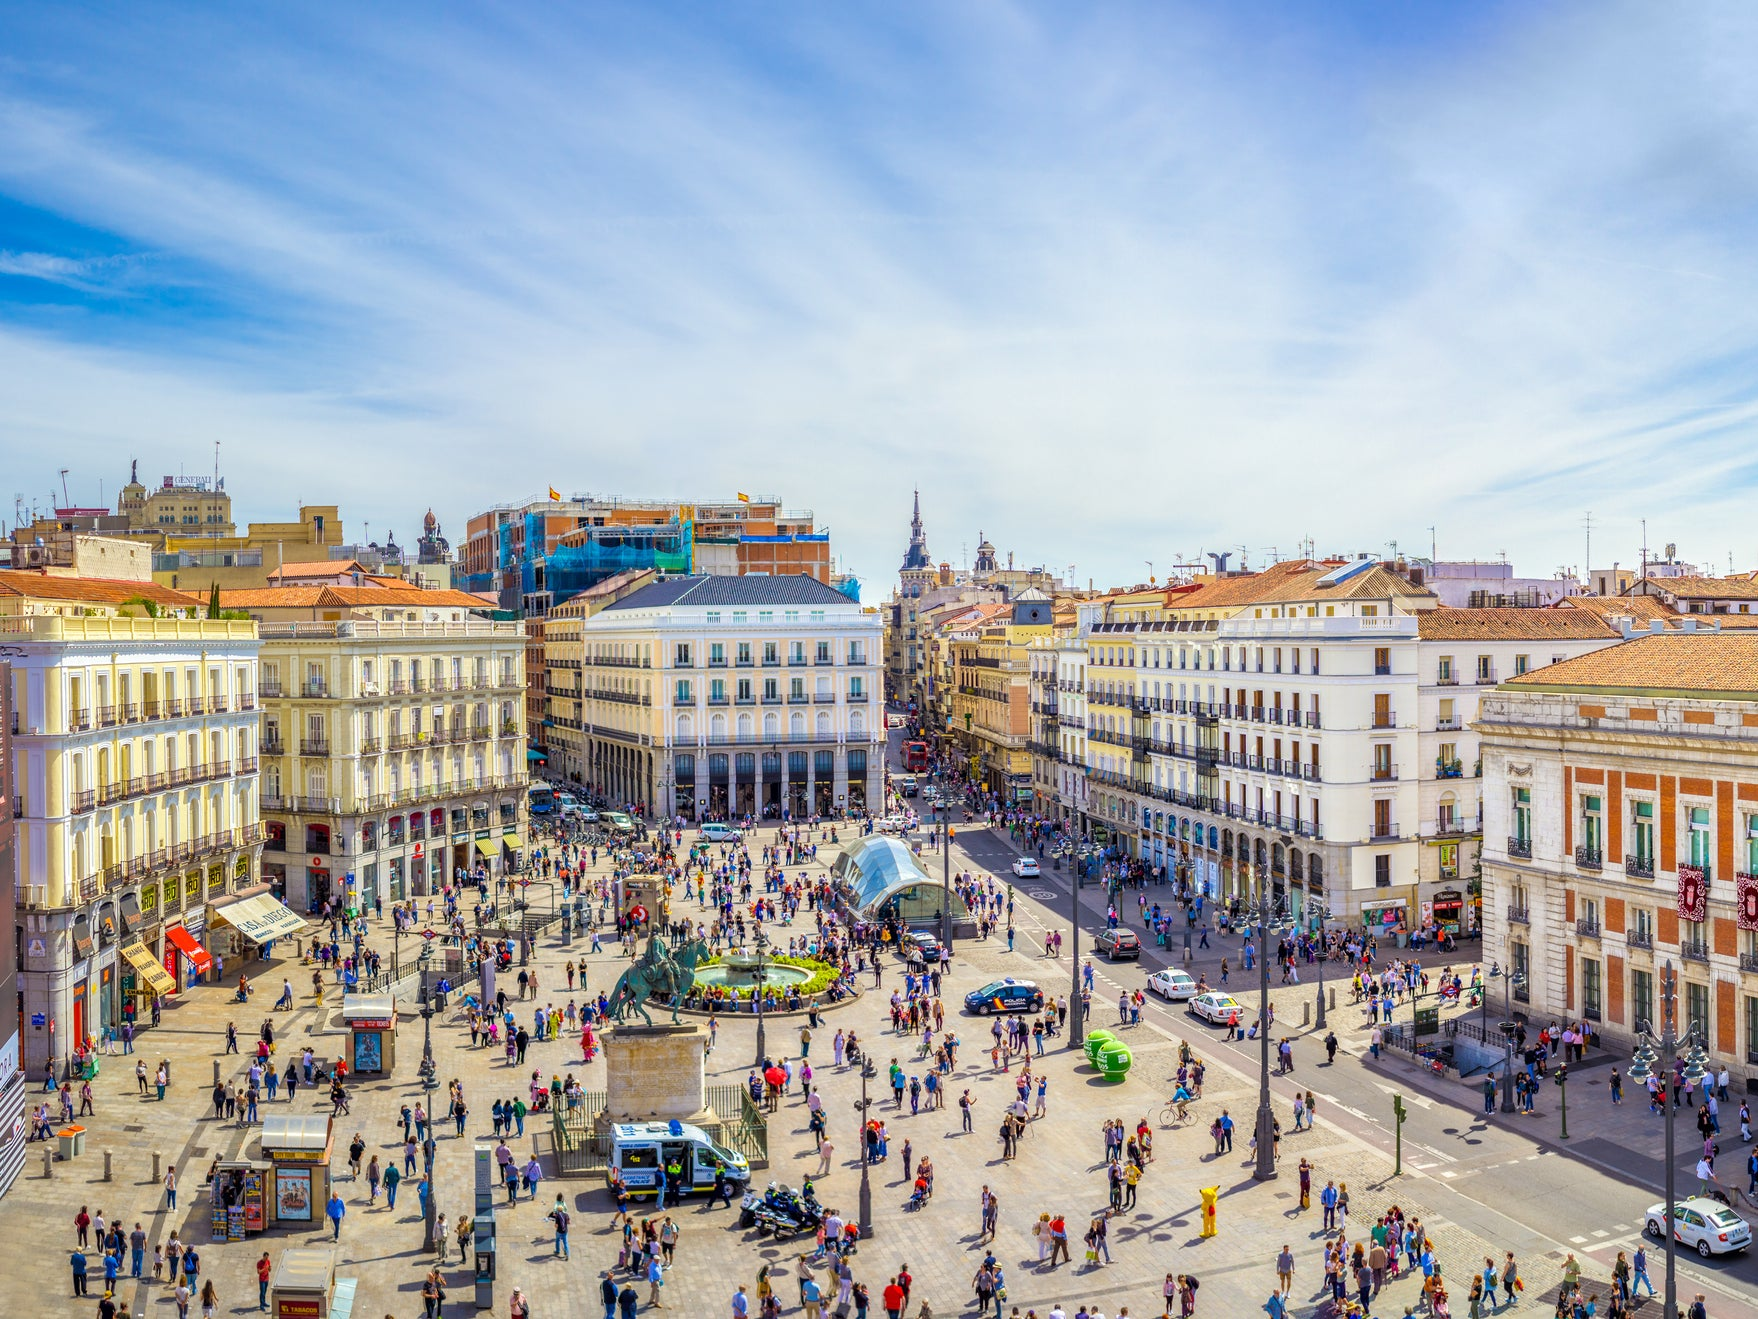 Madrid city guide: Where to eat, drink, shop and stay in the Spanish capital